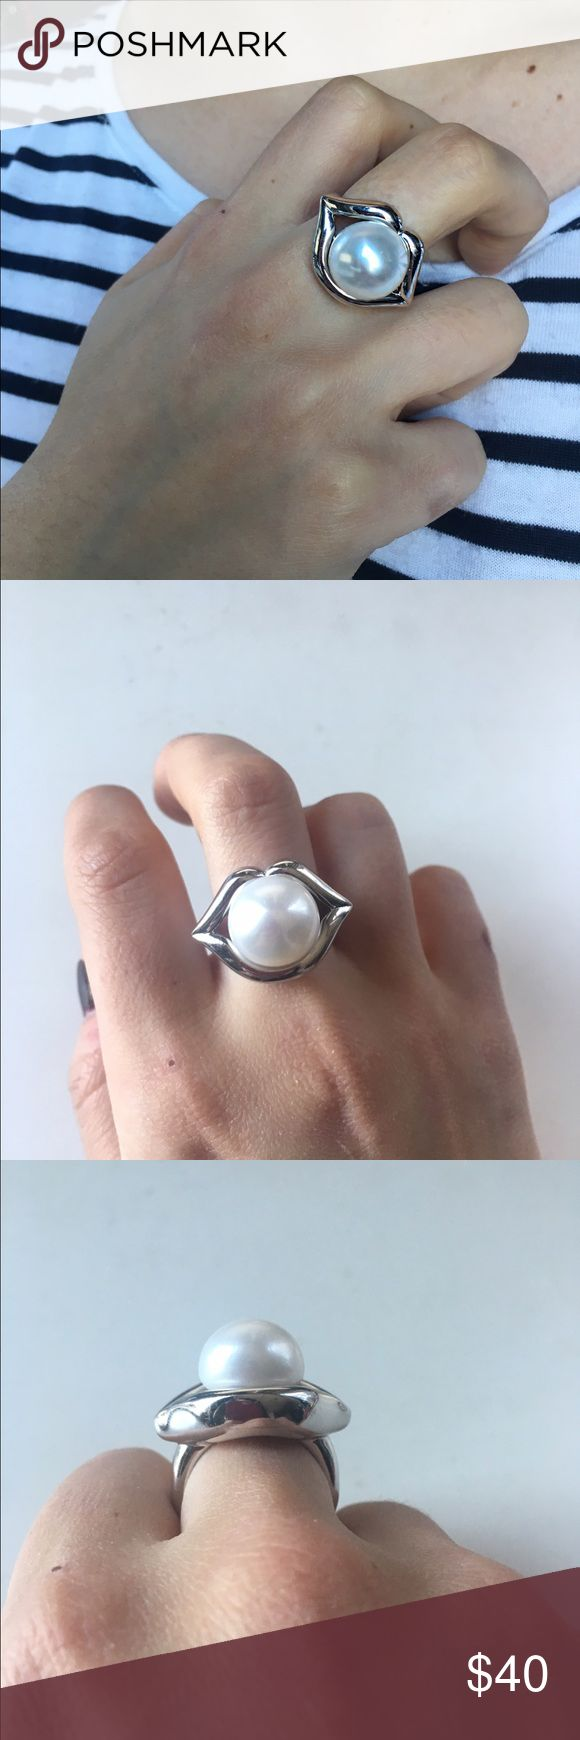 -PEARL LIPS STATEMENT RING- Amazing cocktail ring featuring enormous 12mm freshwater pearl, set between rhodium plated sterling silver lips. This stunner is a size 8 and is made by Honora. It's a bit too big for my fingers so I'm selling it. This is definitely a conversation starter and is incredibly substantial on the finger. Excellent condition. Honora Jewelry Rings